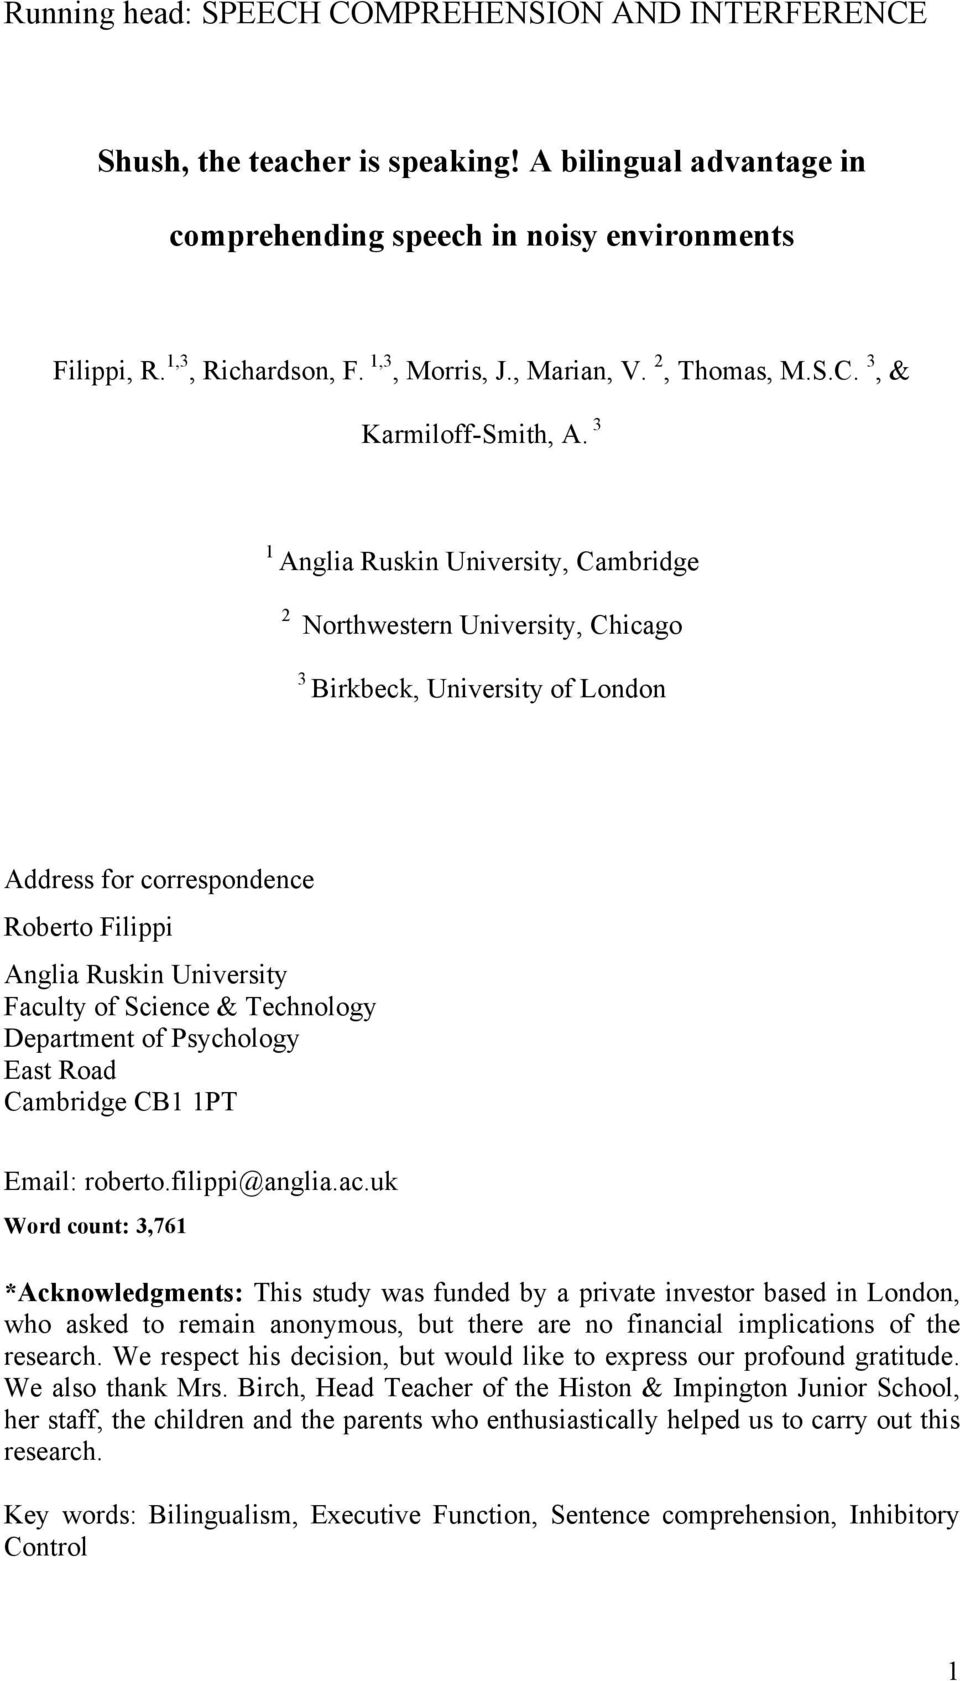 3 1 Anglia Ruskin University, Cambridge 2 Northwestern University, Chicago 3 Birkbeck, University of London Address for correspondence Roberto Filippi Anglia Ruskin University Faculty of Science &